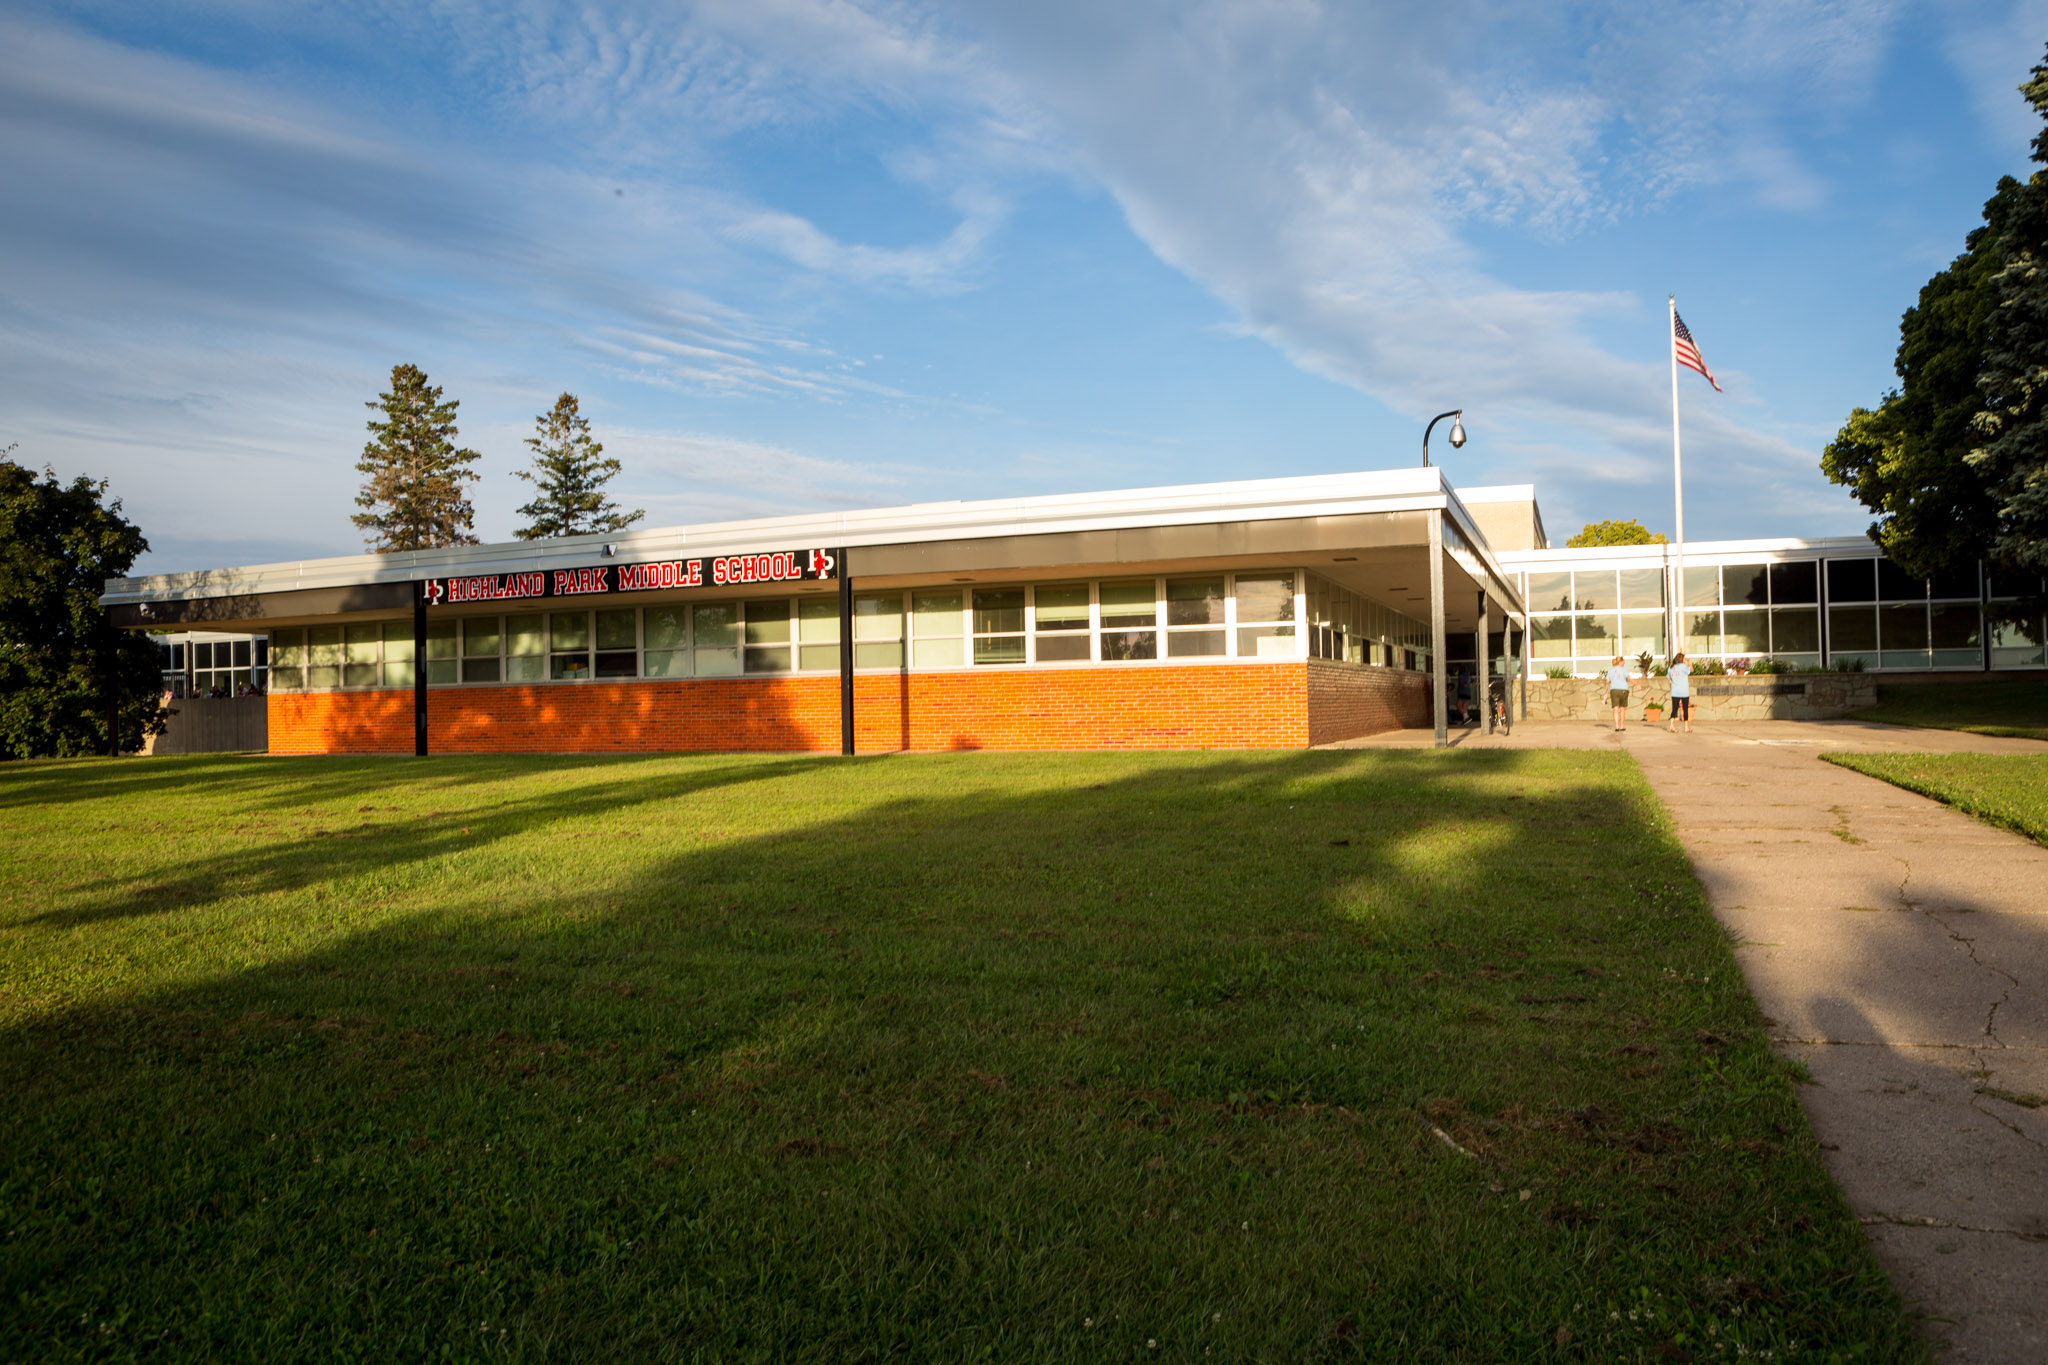 Saint Pauls Middle School